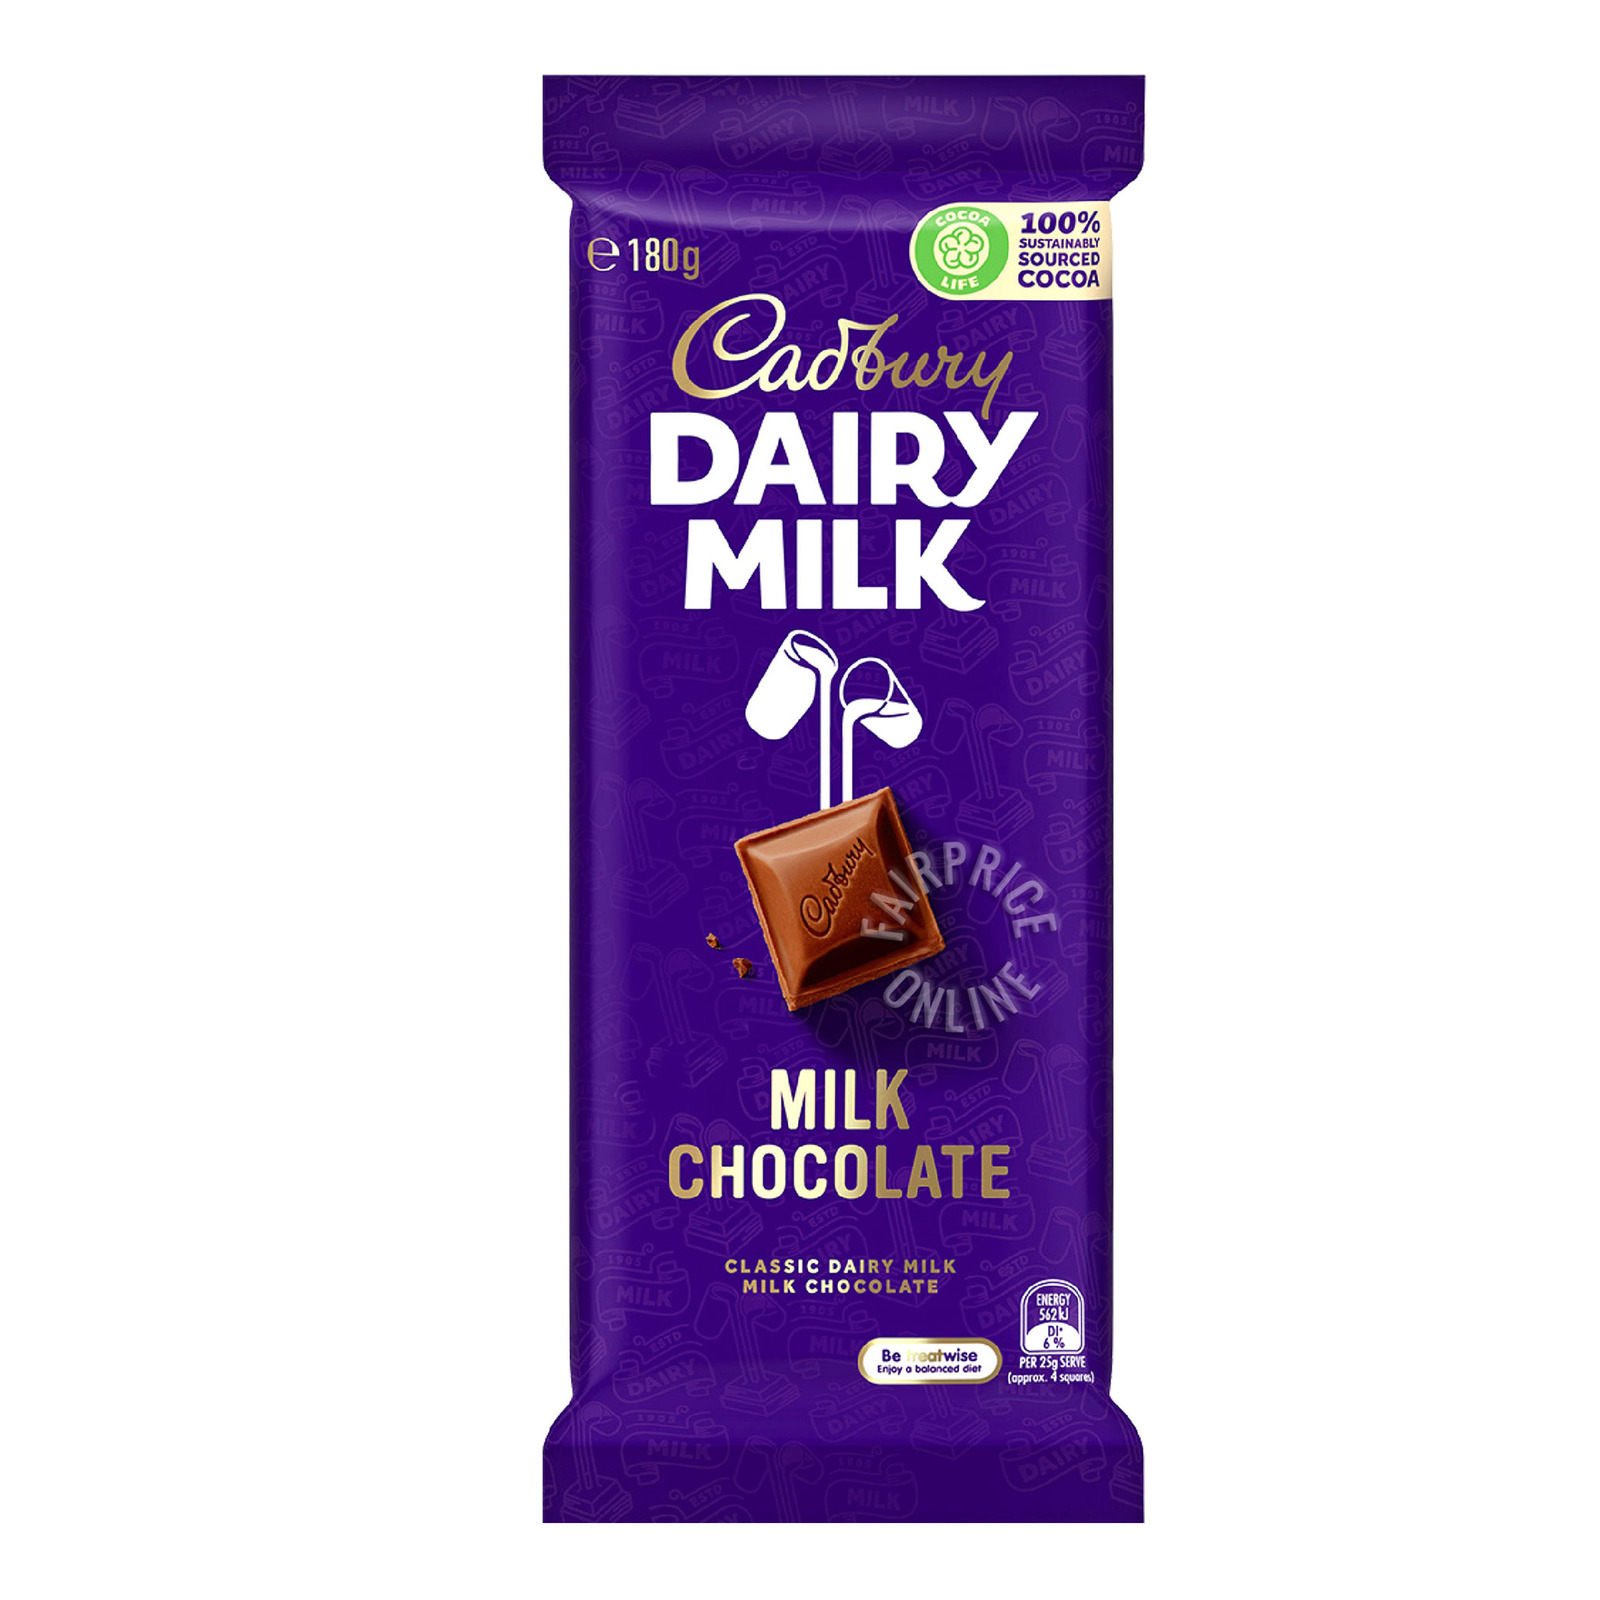 Cadbury Dairy Milk Fruit and Nut Milk Chocolate Block